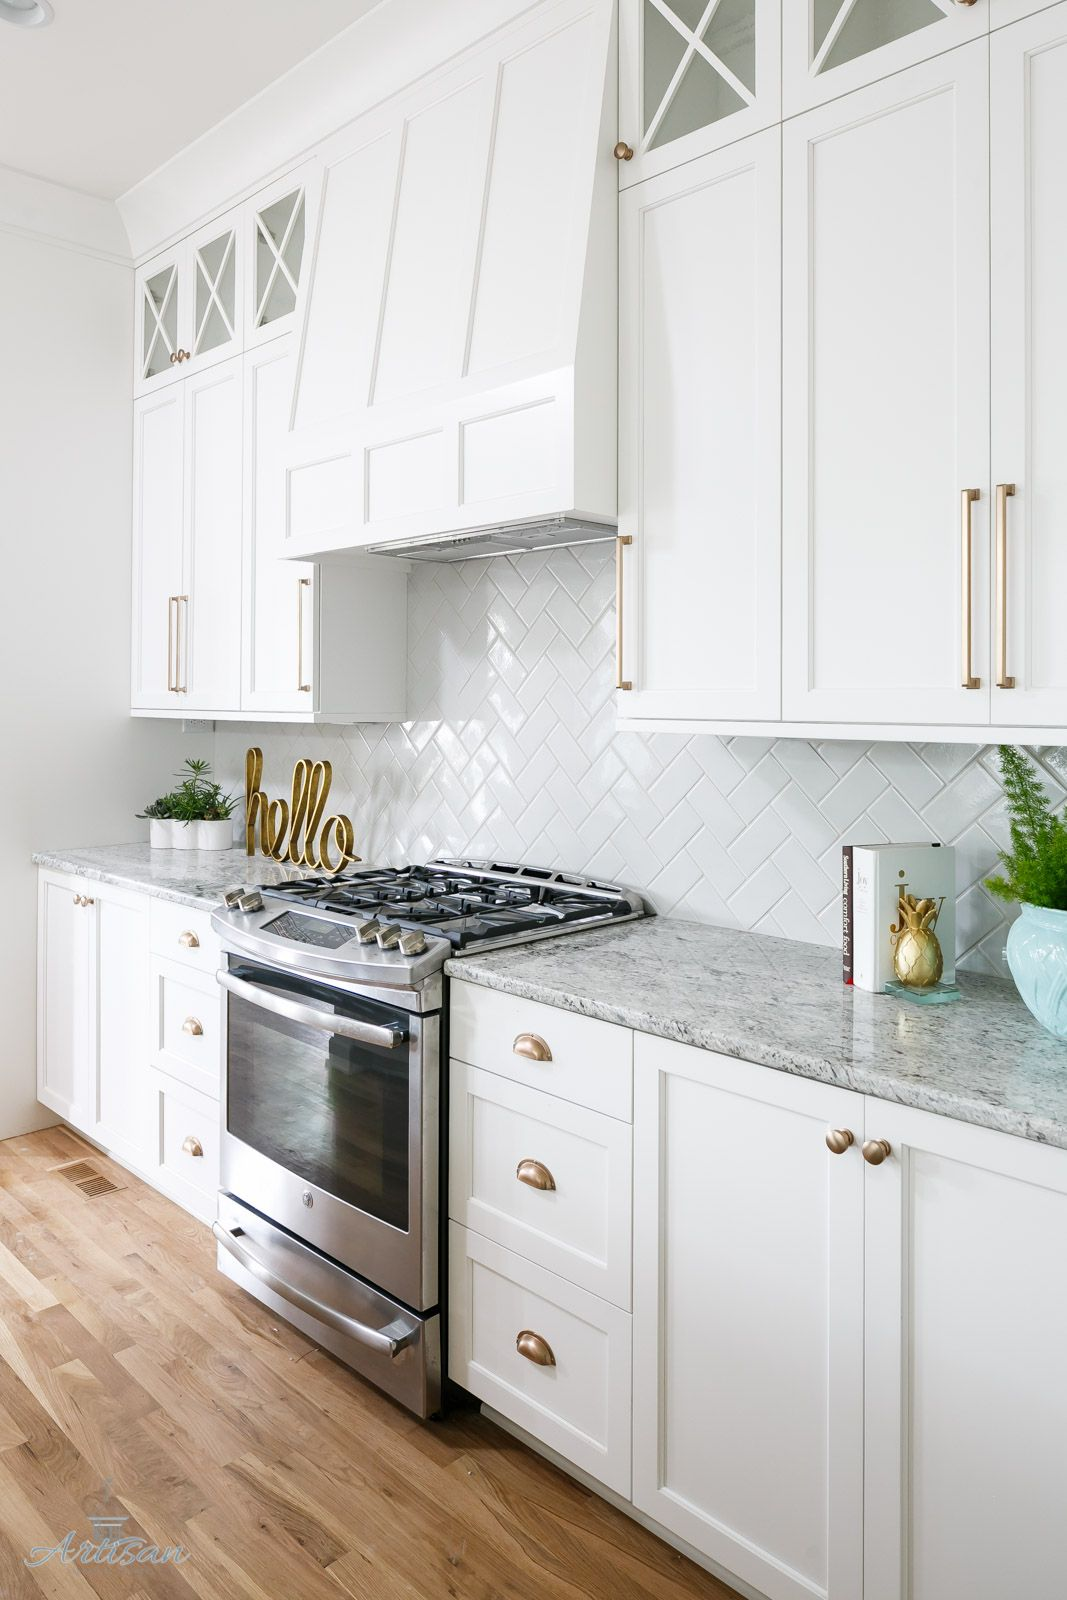 White kitchen design with marble countertops and gold